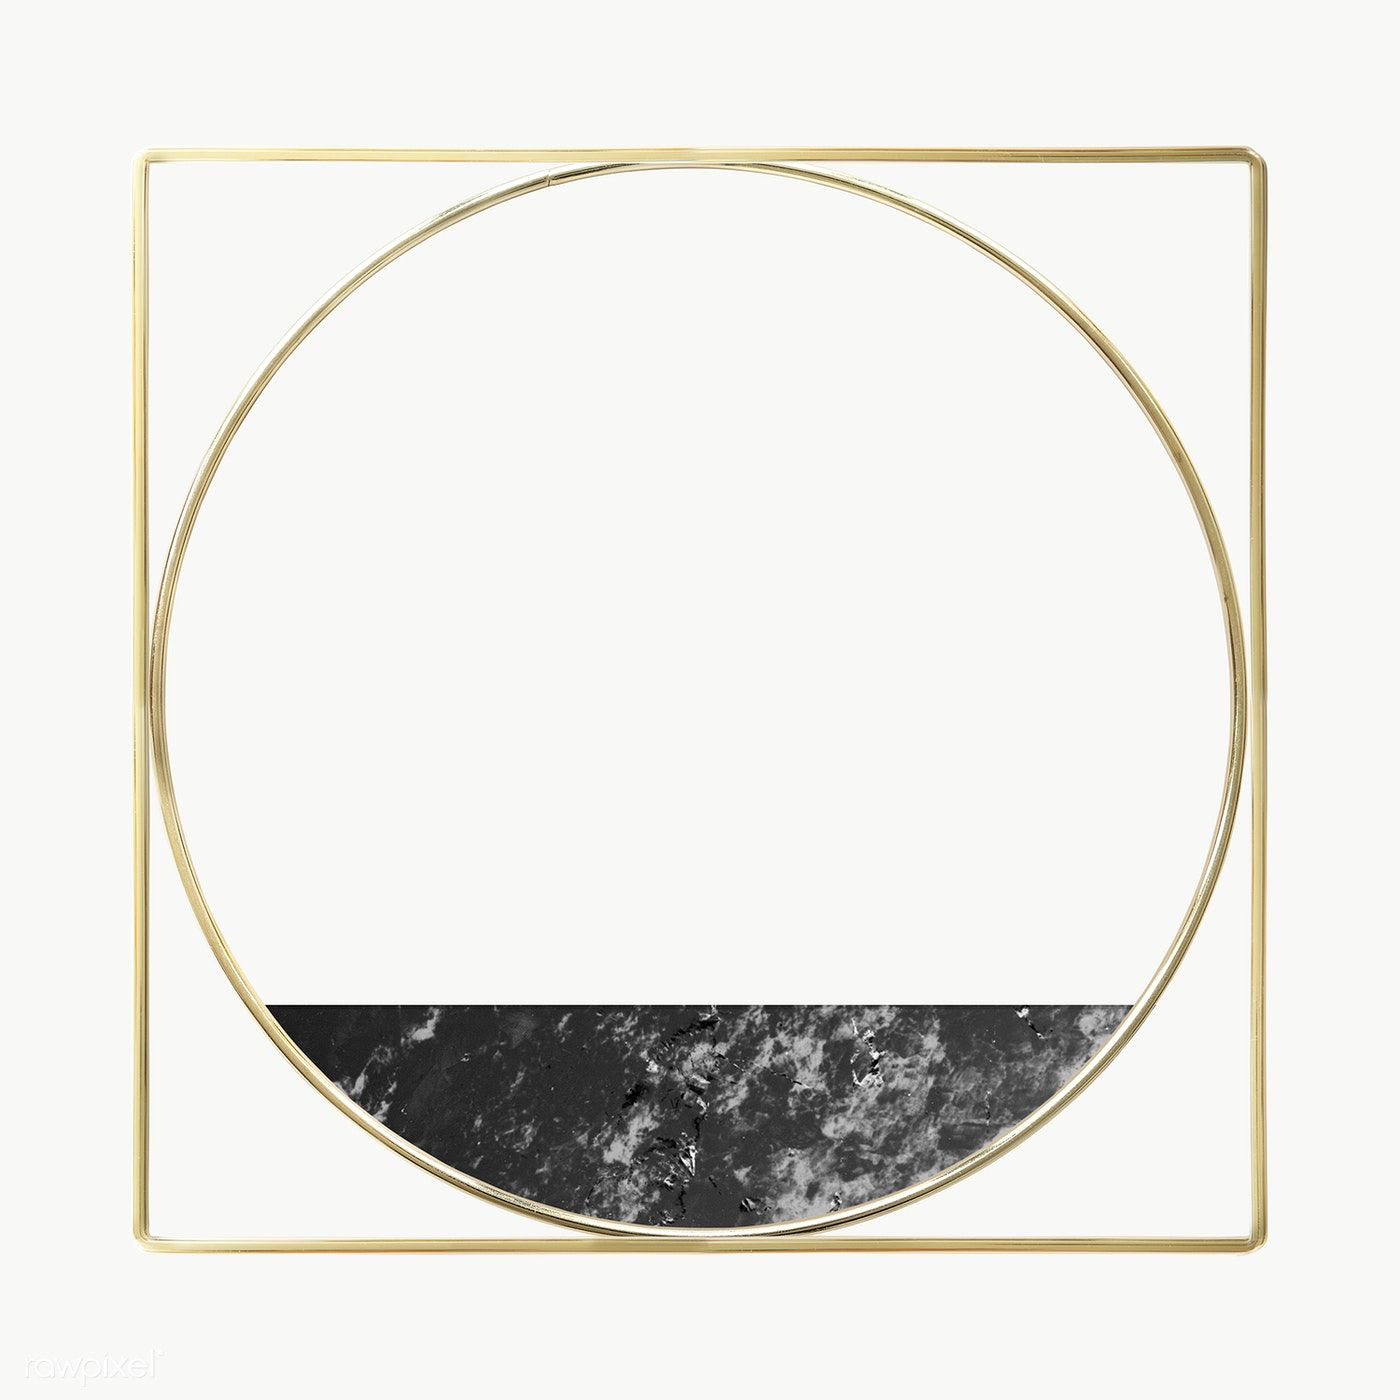 Download Premium Png Of Gold Square And Round Frame Decorated With A In 2020 Gold Framed Mirror Marble Frame Mirror Pink Marble Background